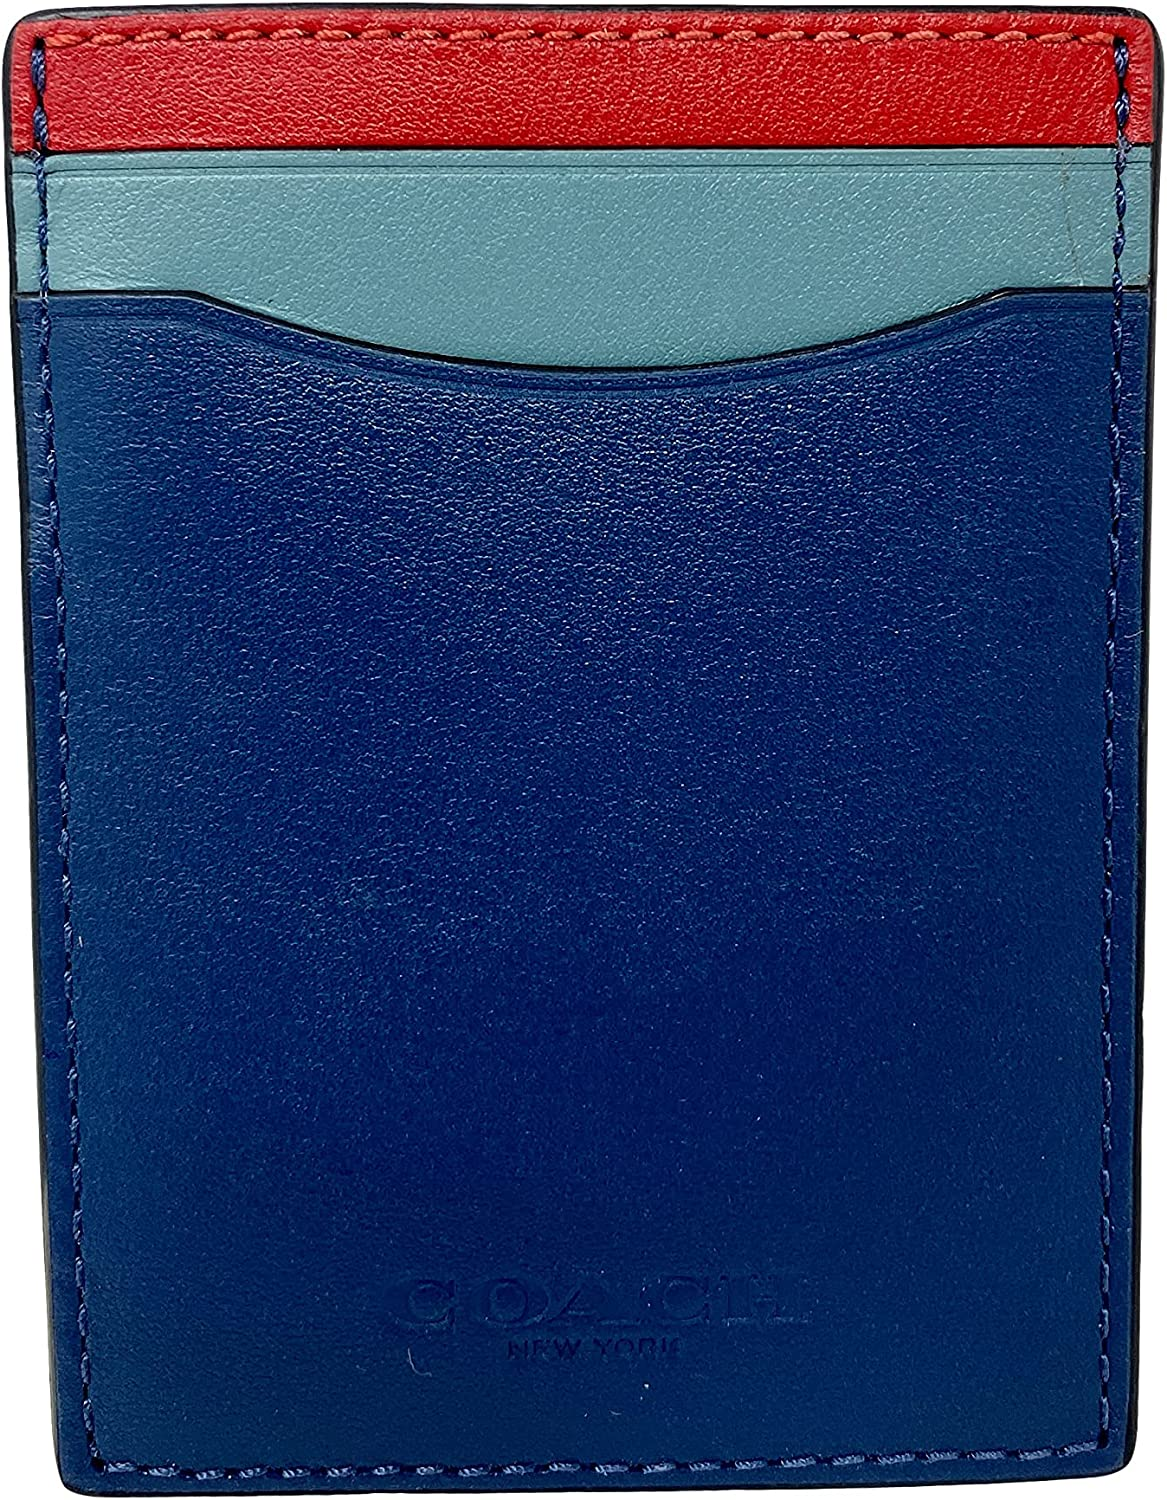 Coach Boxed 3-In-1 Card Case Gift Set In Colorblock